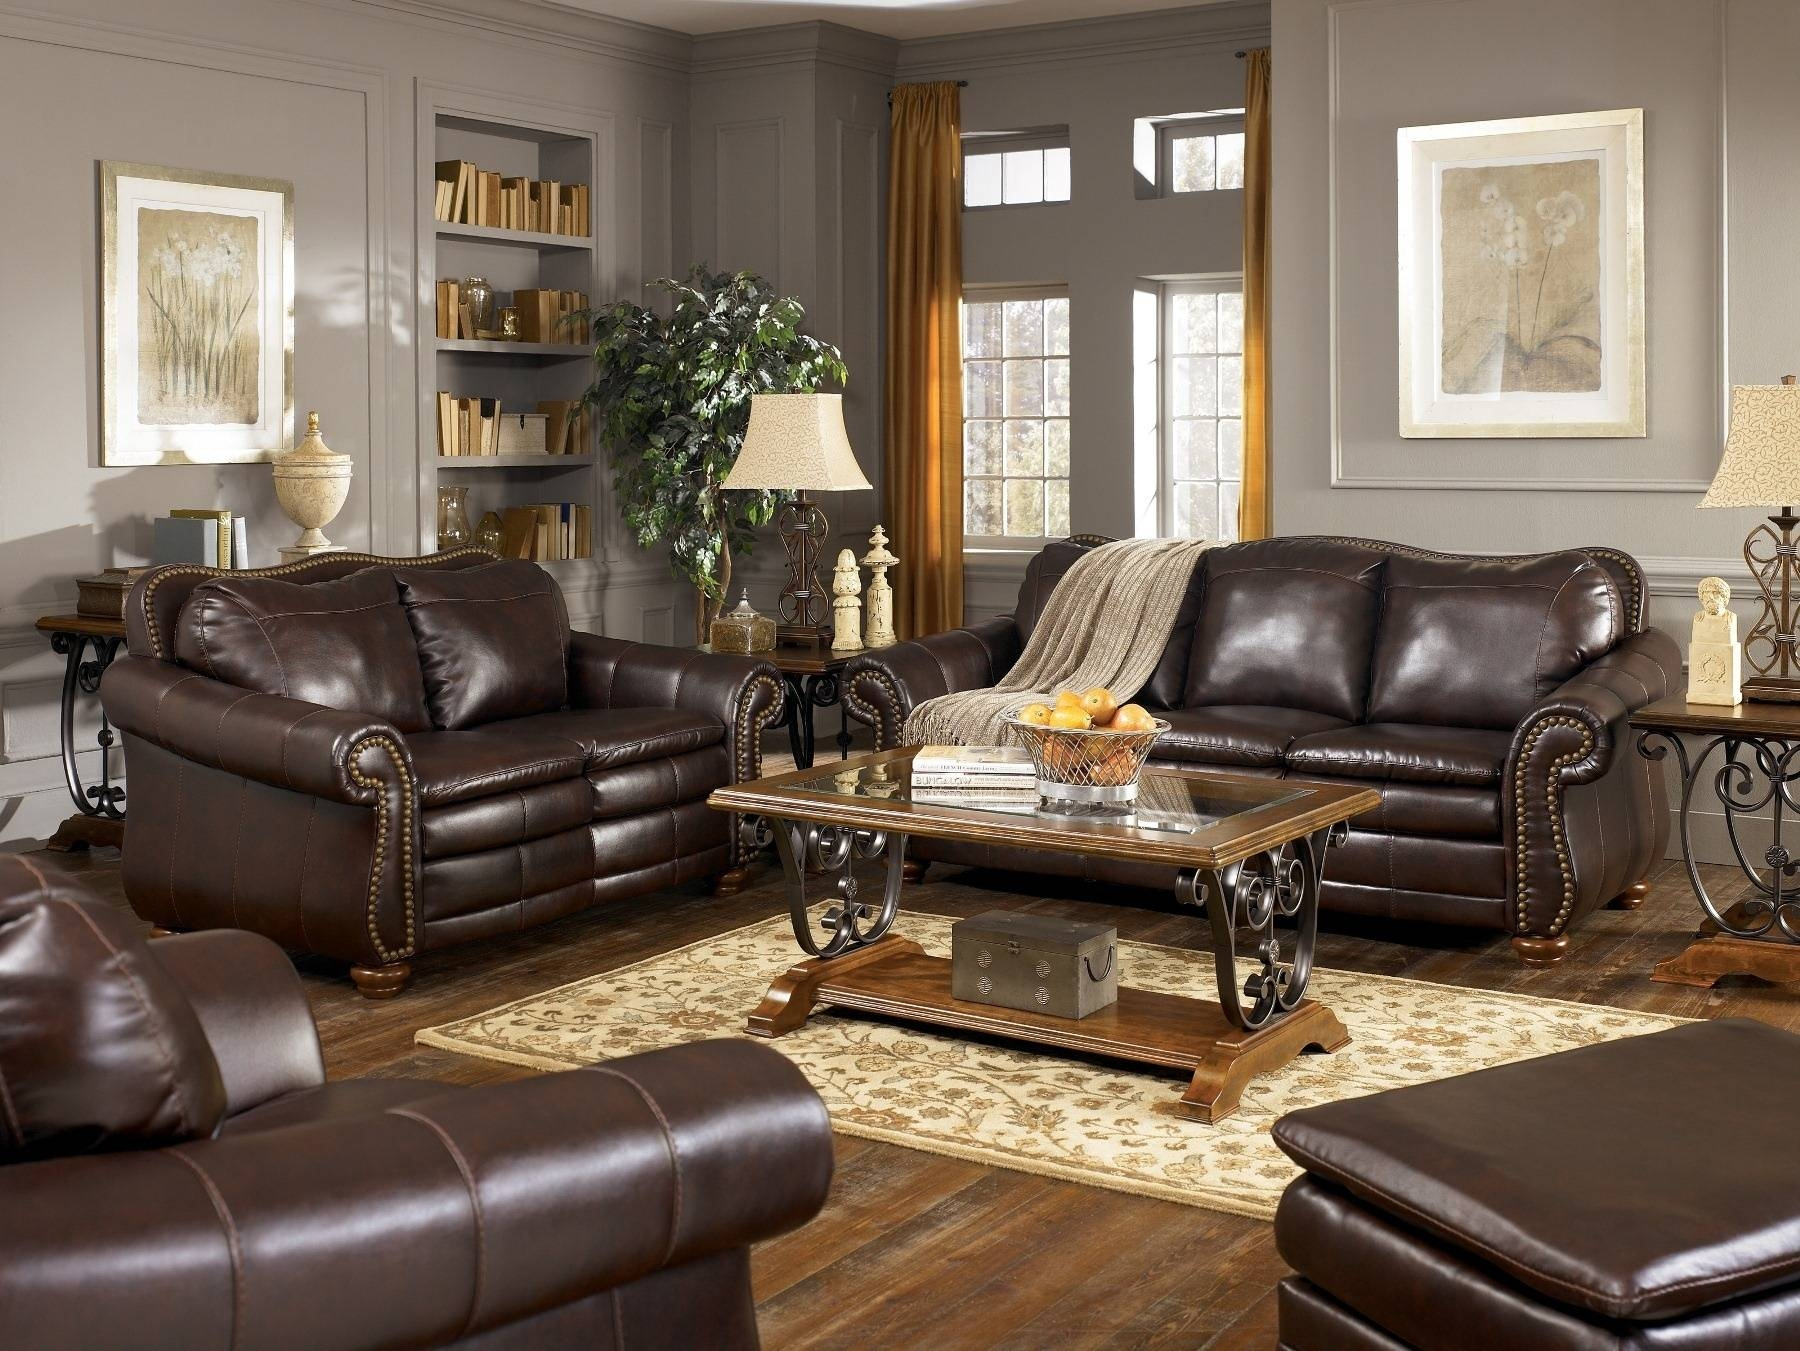 Showing Gallery of Country Style Sofas and Loveseats View 8 of 30